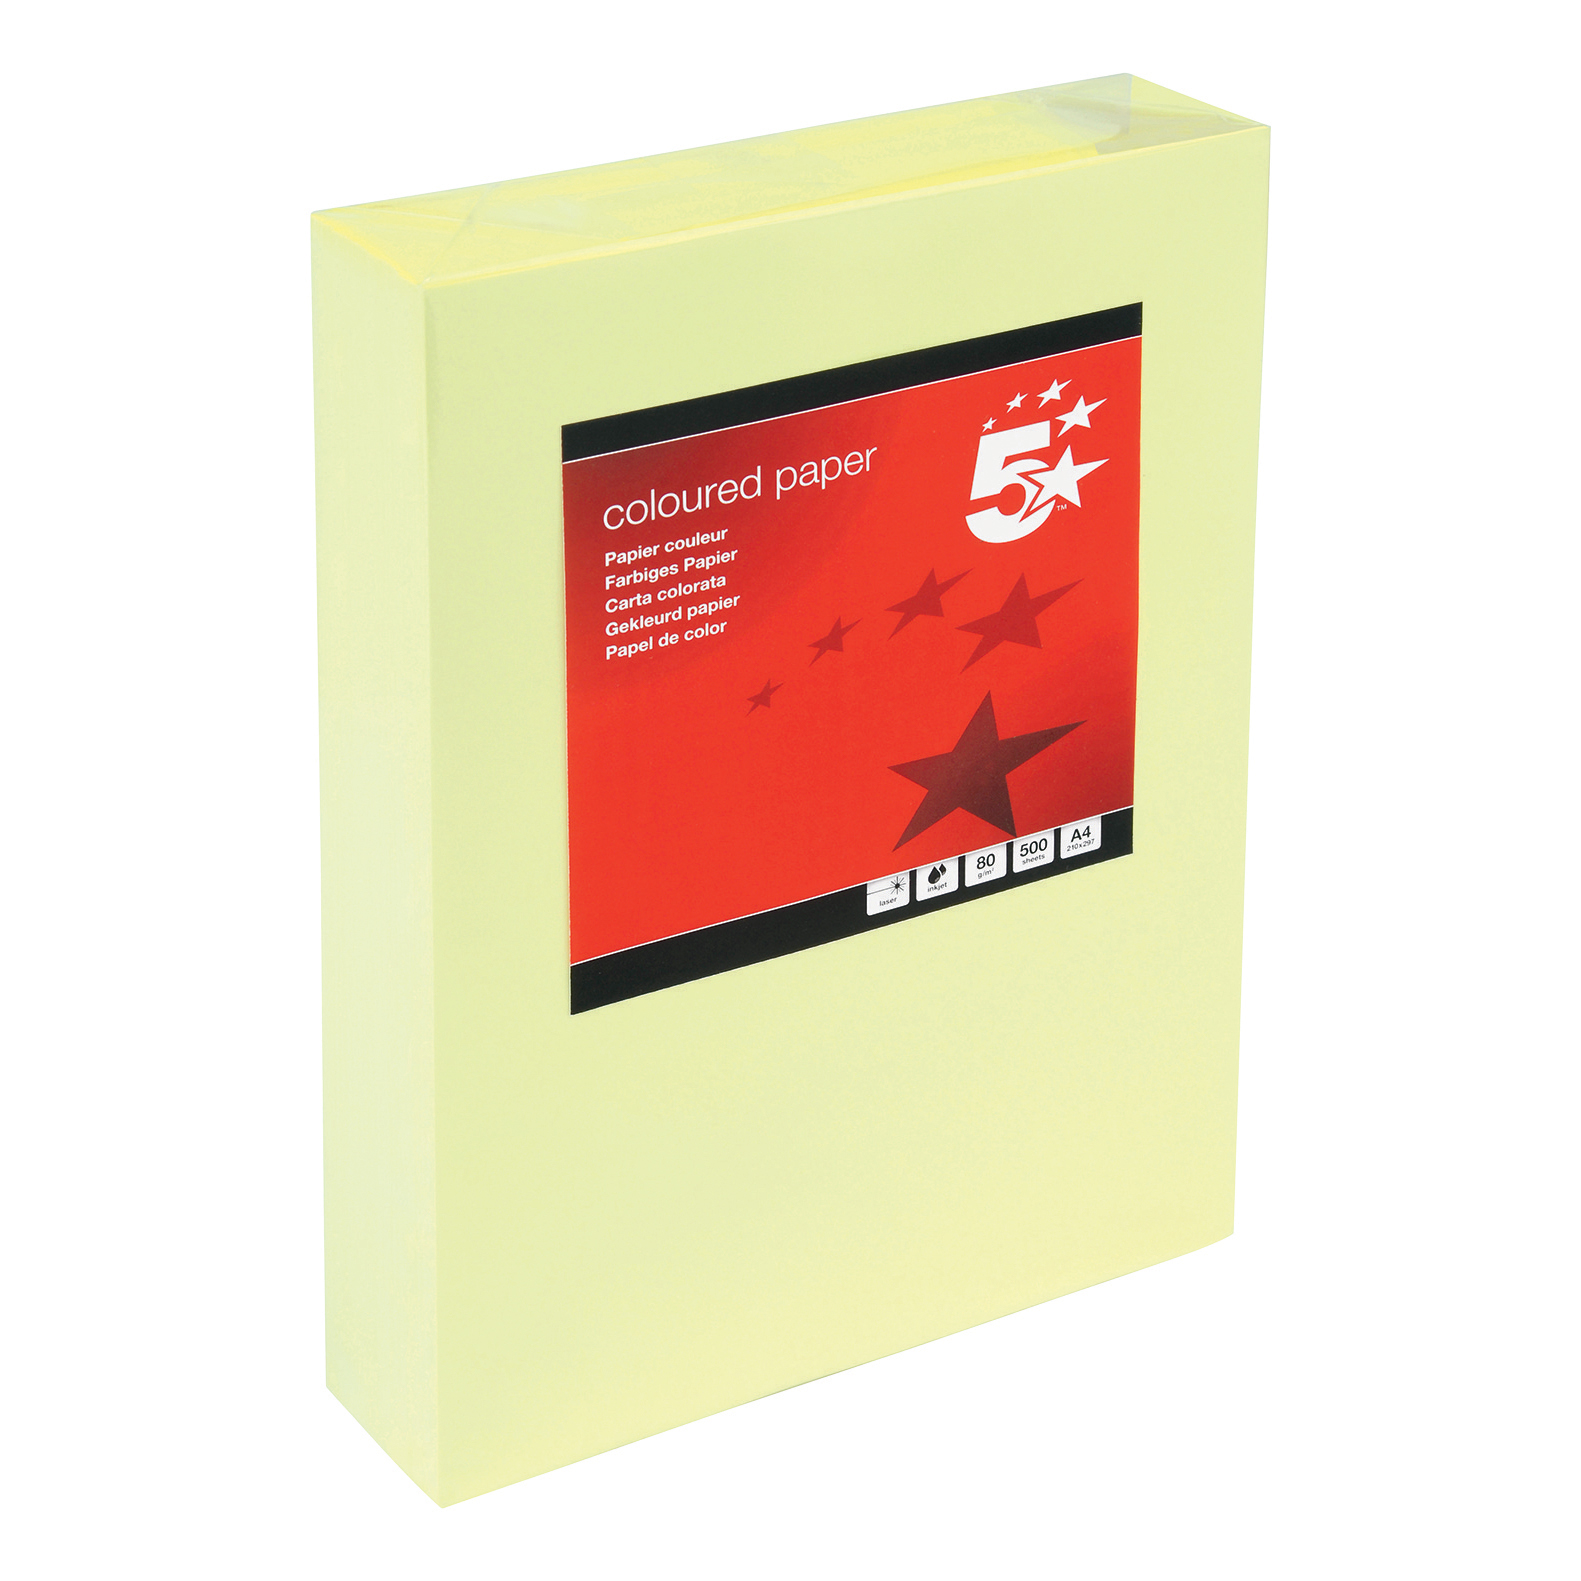 A4 5 Star Office Coloured Copier Paper Multifunctional Ream-Wrapped 80gsm A4 Light Yellow 500 Sheets